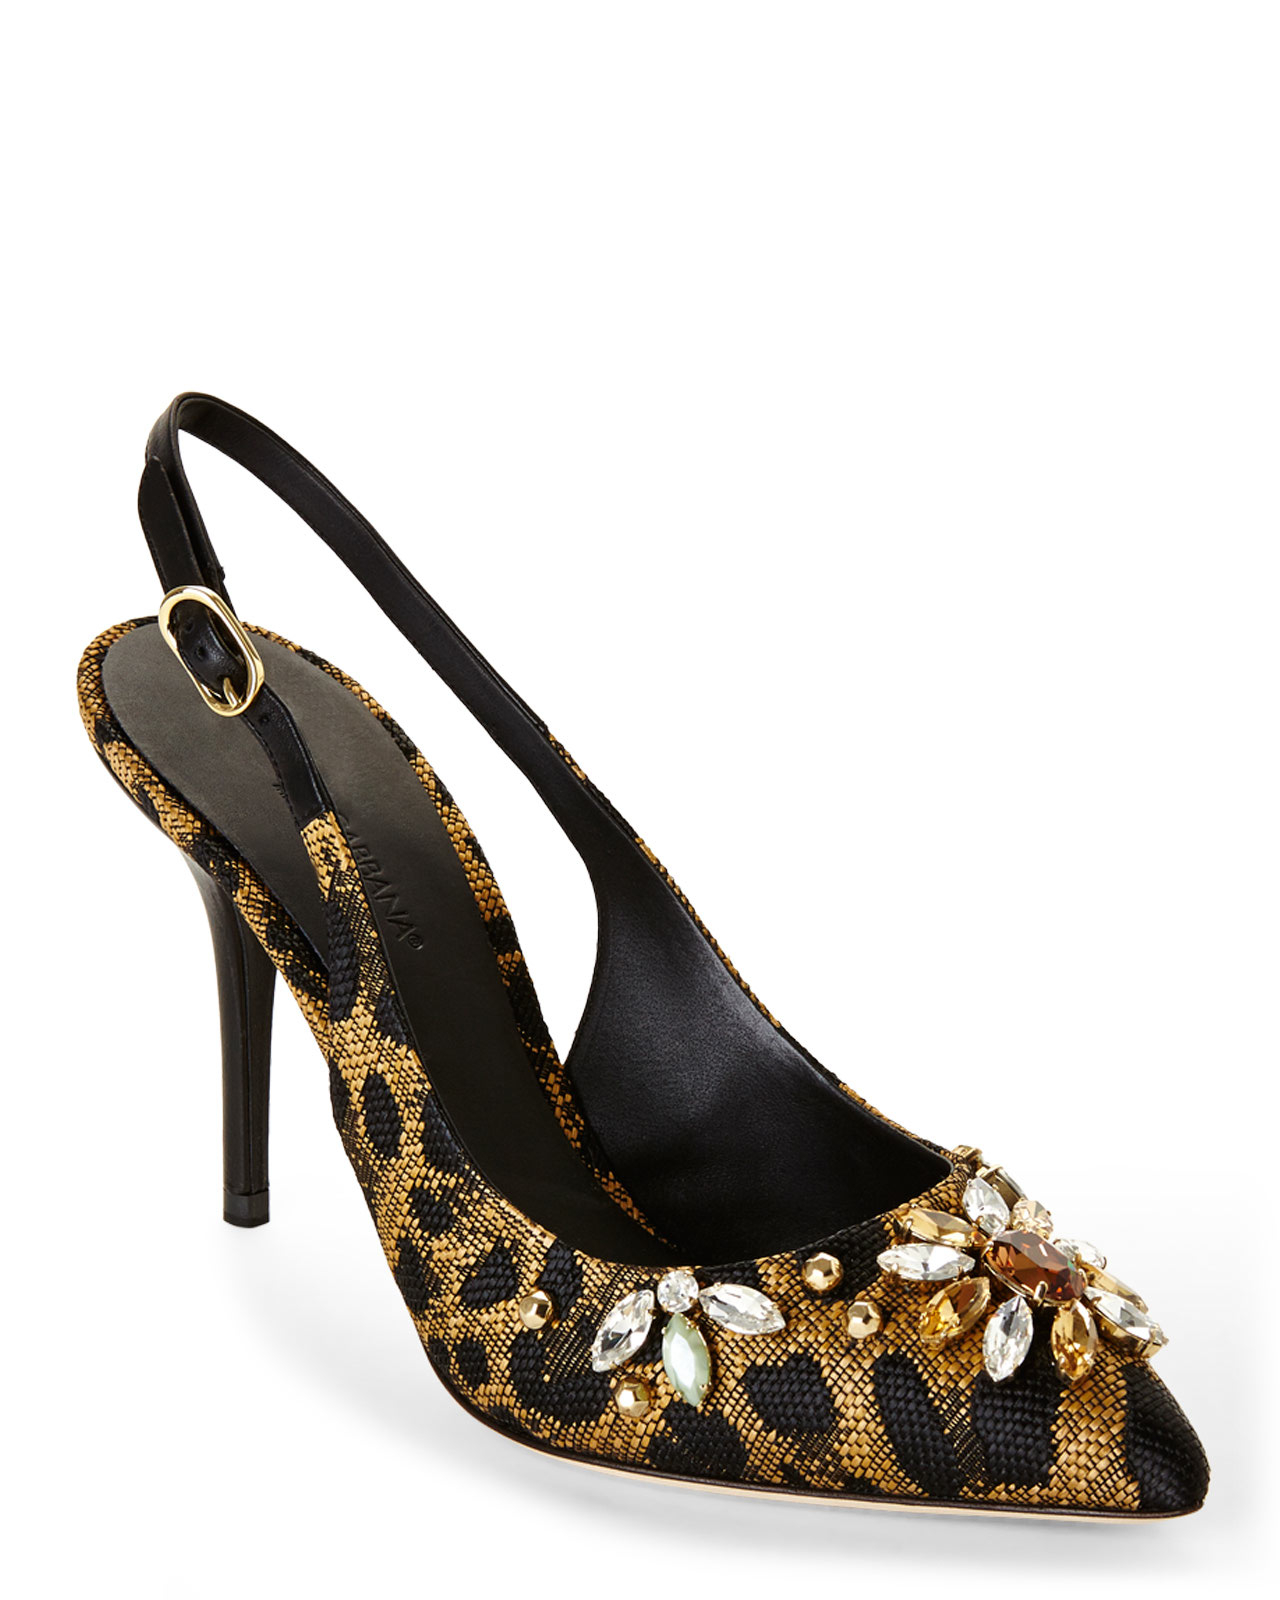 Dolce & Gabbana Animal Print Slingback Pumps pay with paypal cheap online popular cheap price discount from china I1Vfyn0Gj